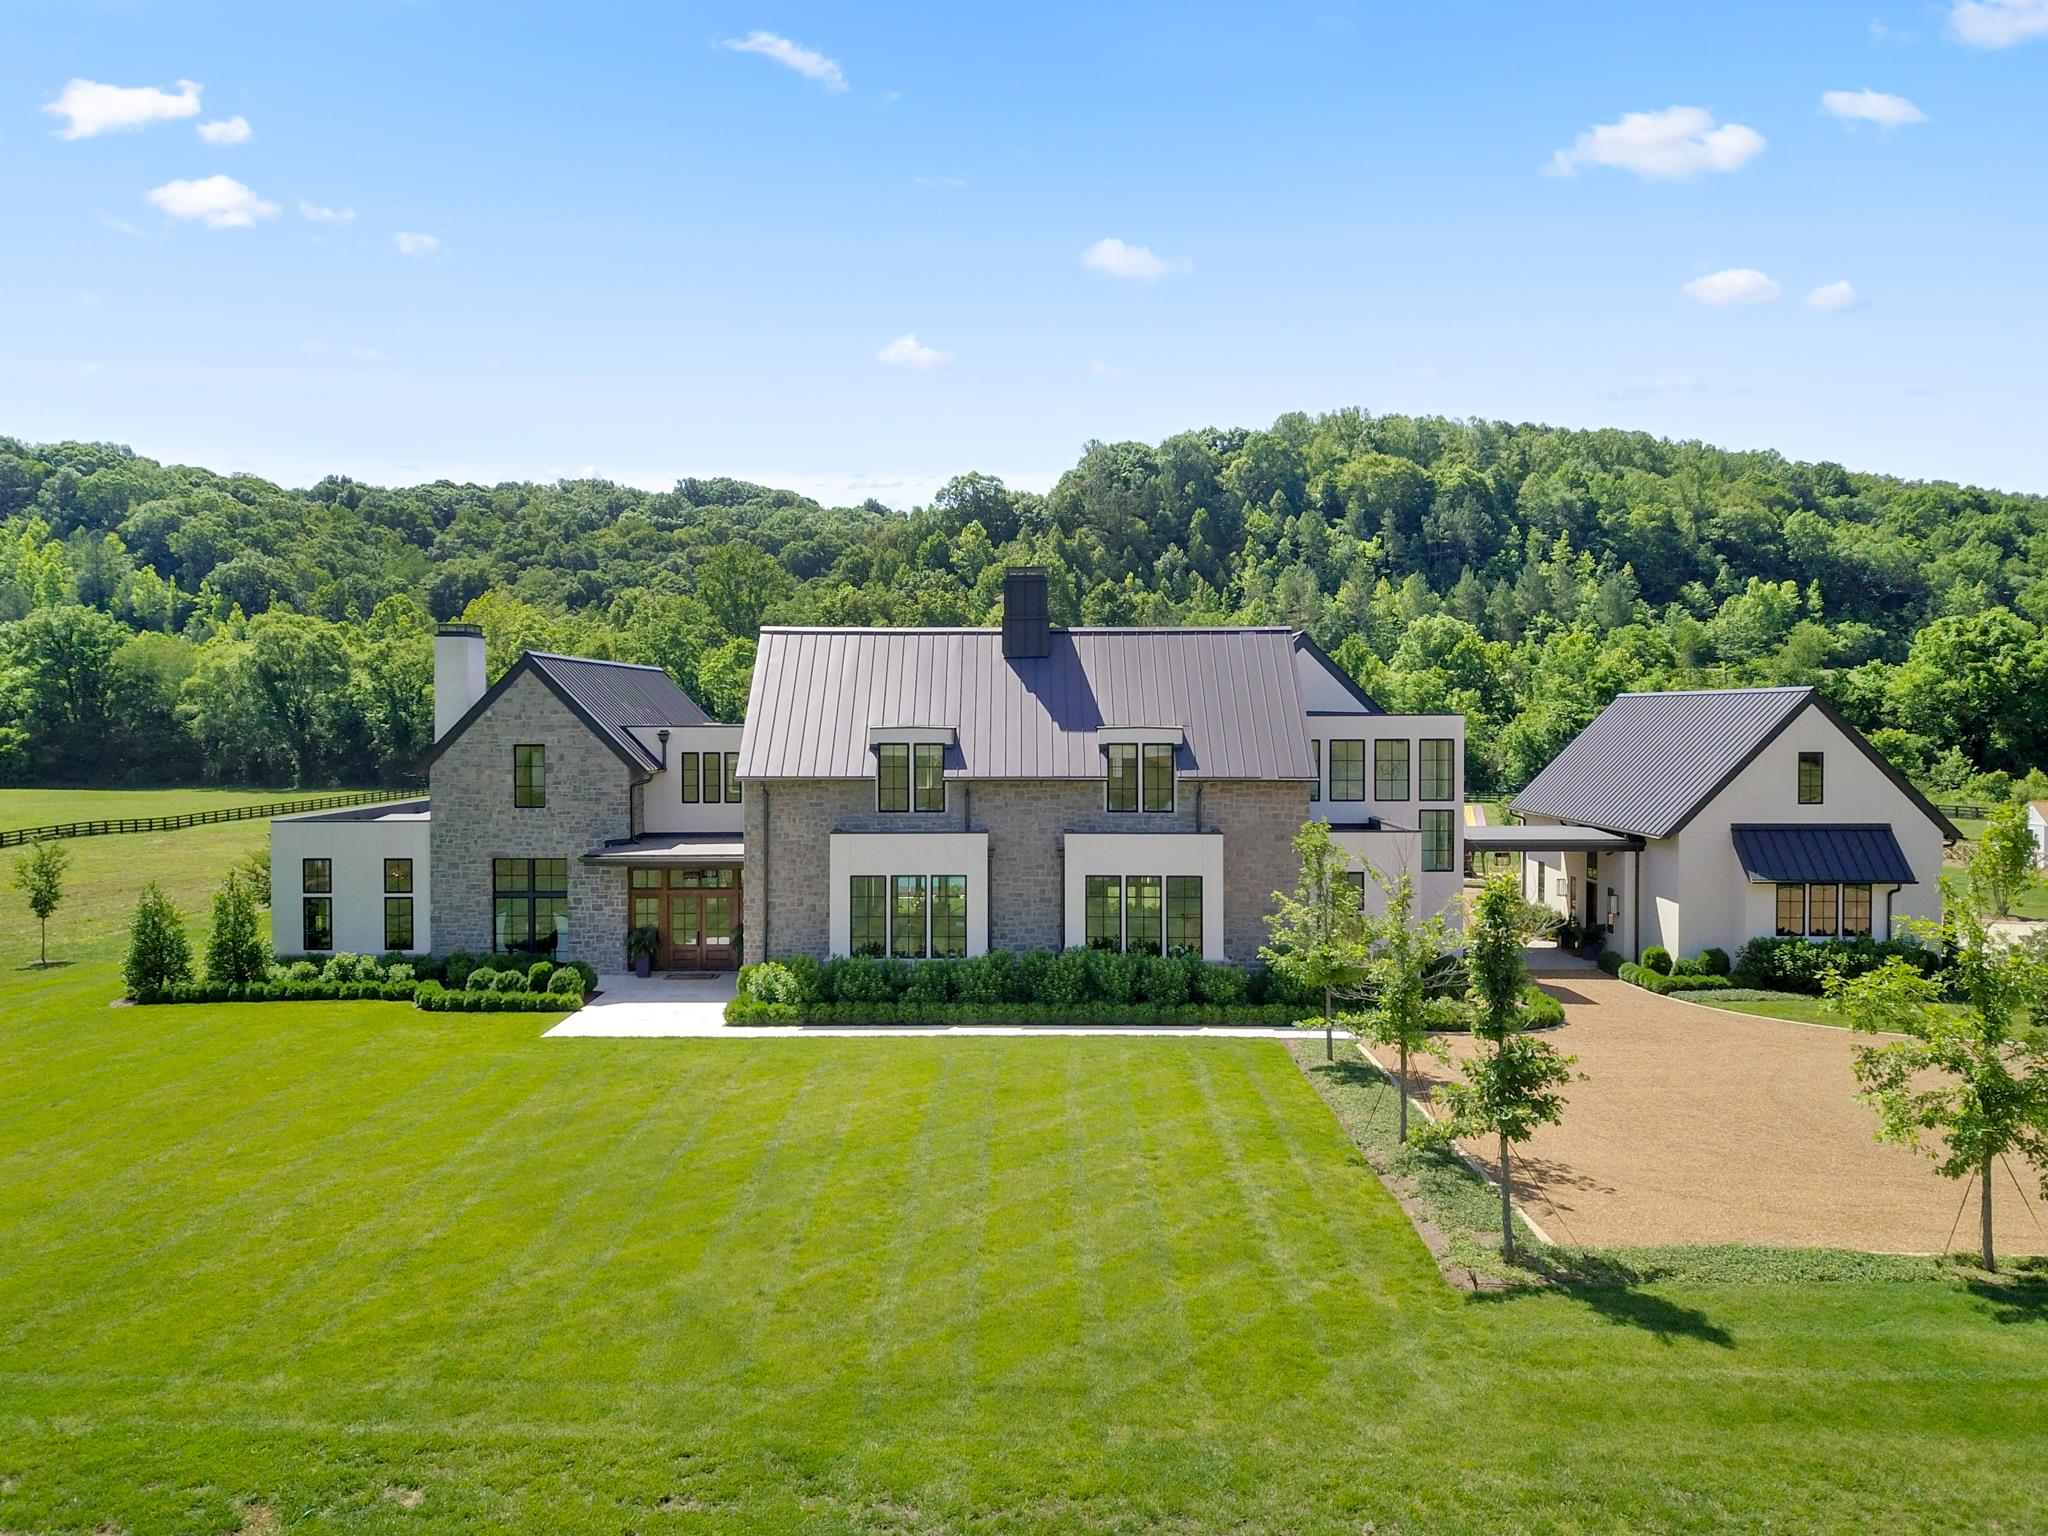 5747 Garrison Rd, Franklin, TN 37064 - Franklin, TN real estate listing